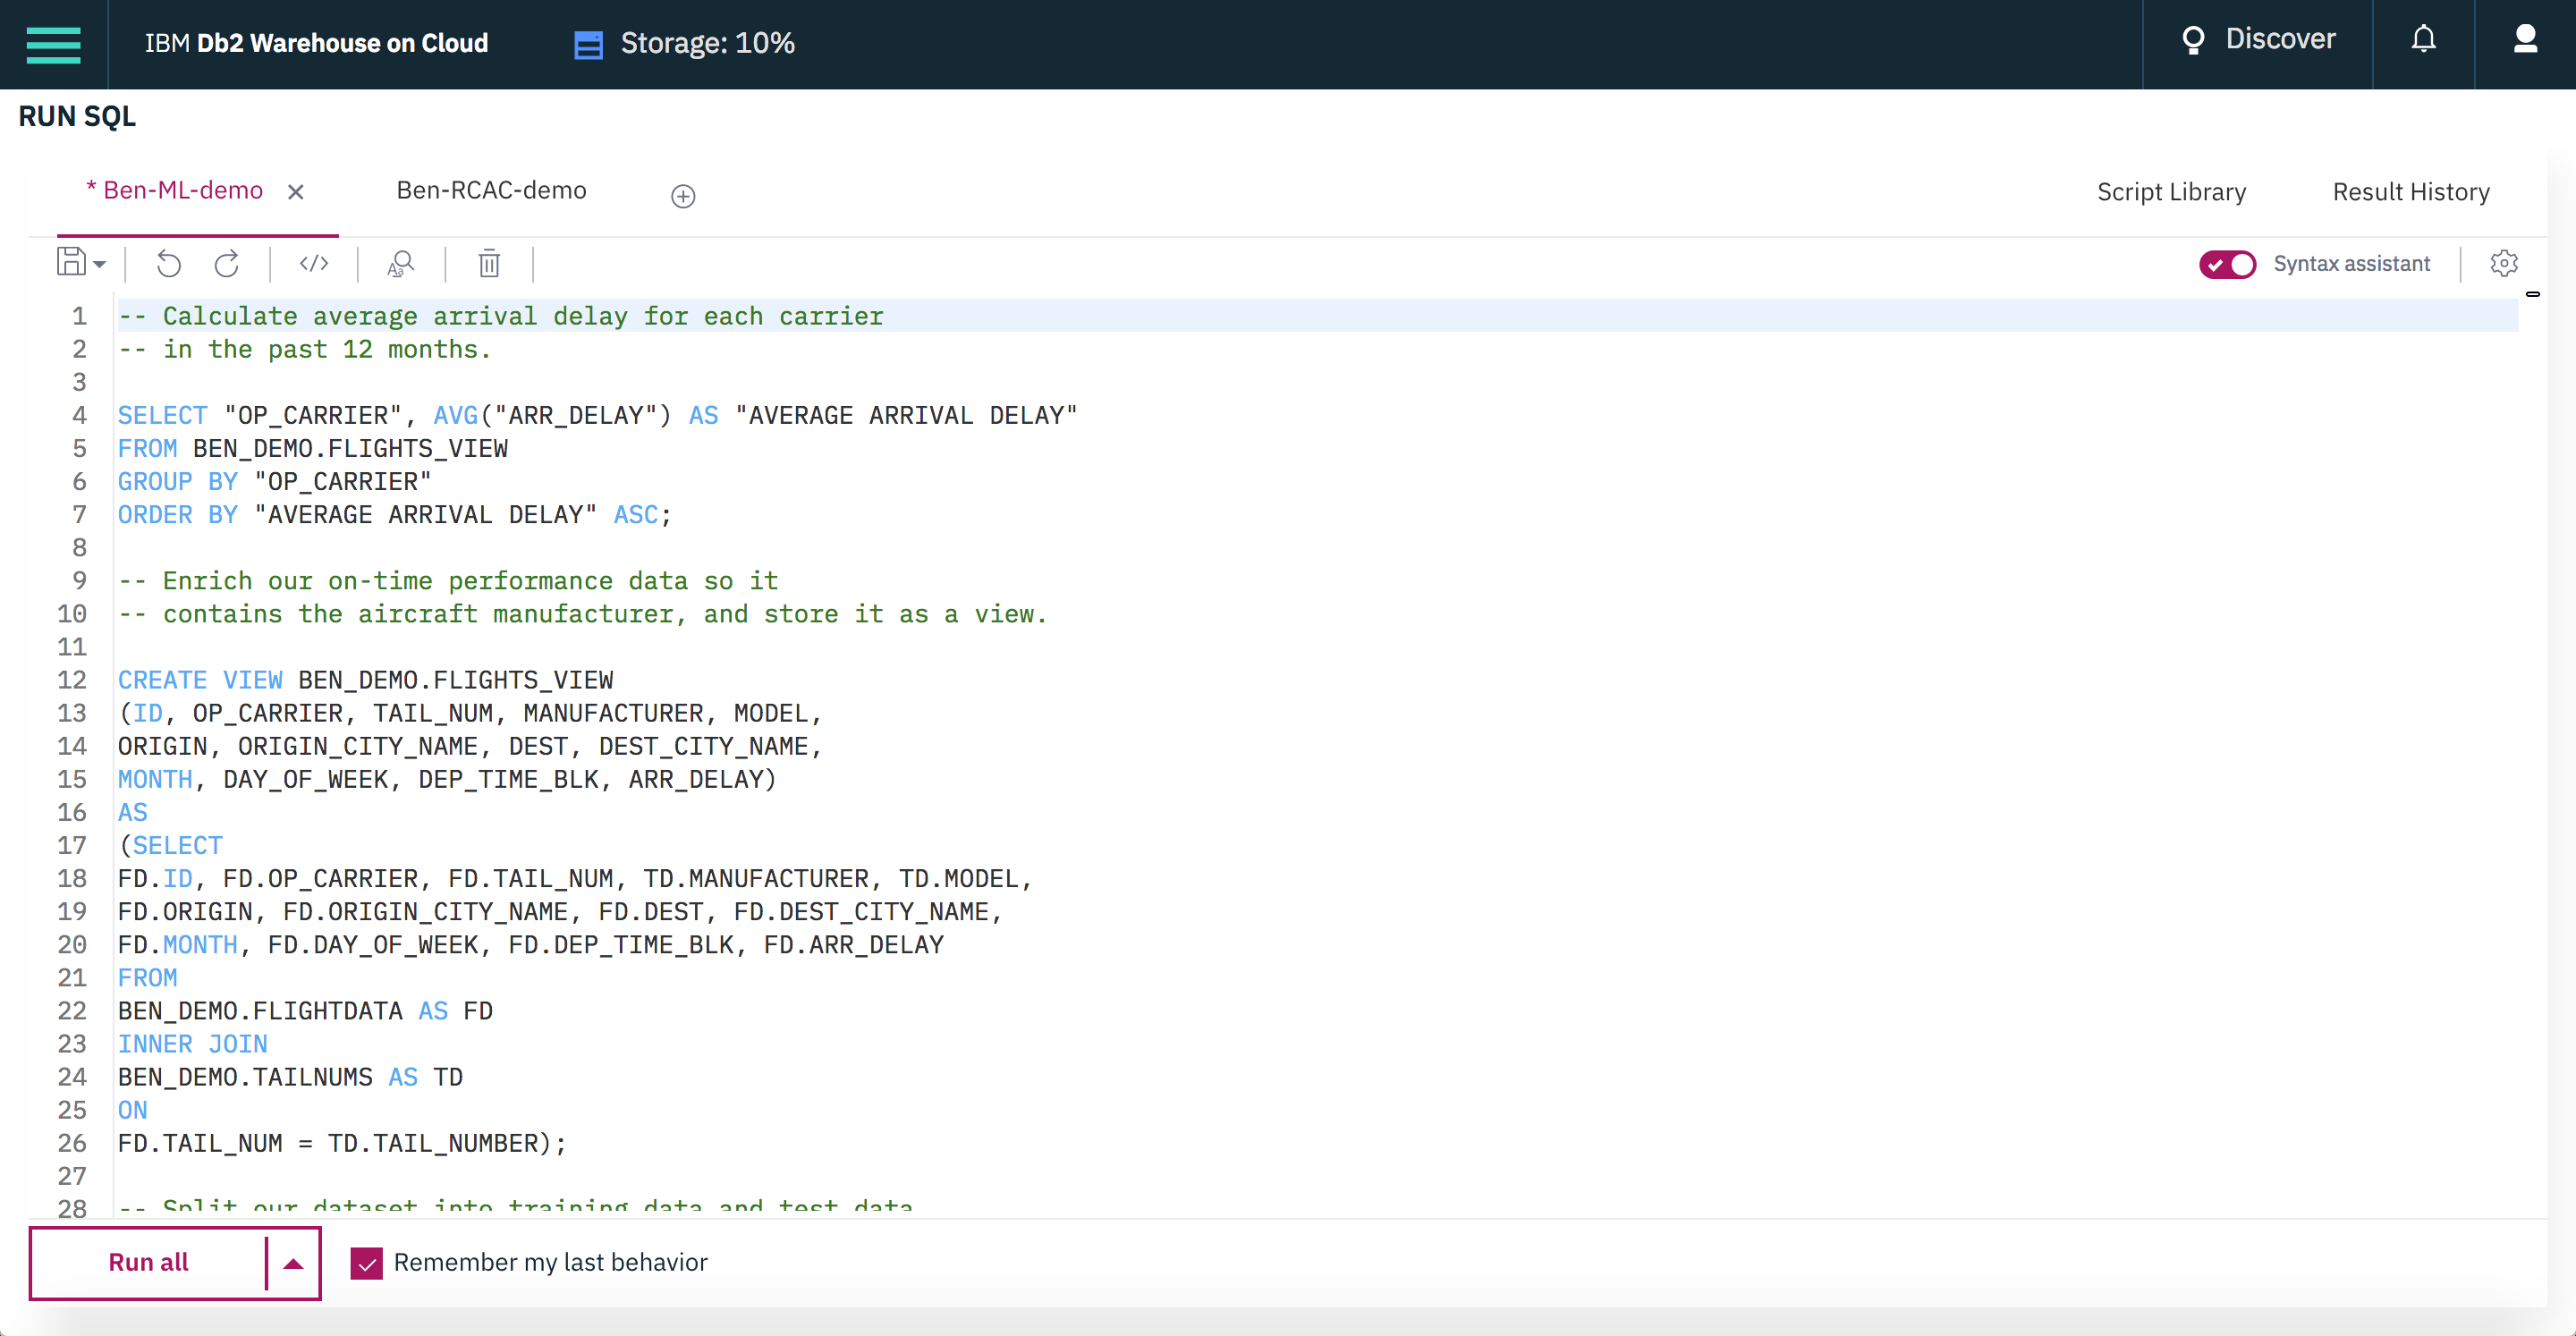 Use the built-in SQL editor to run SQL statements against your data and view the results.